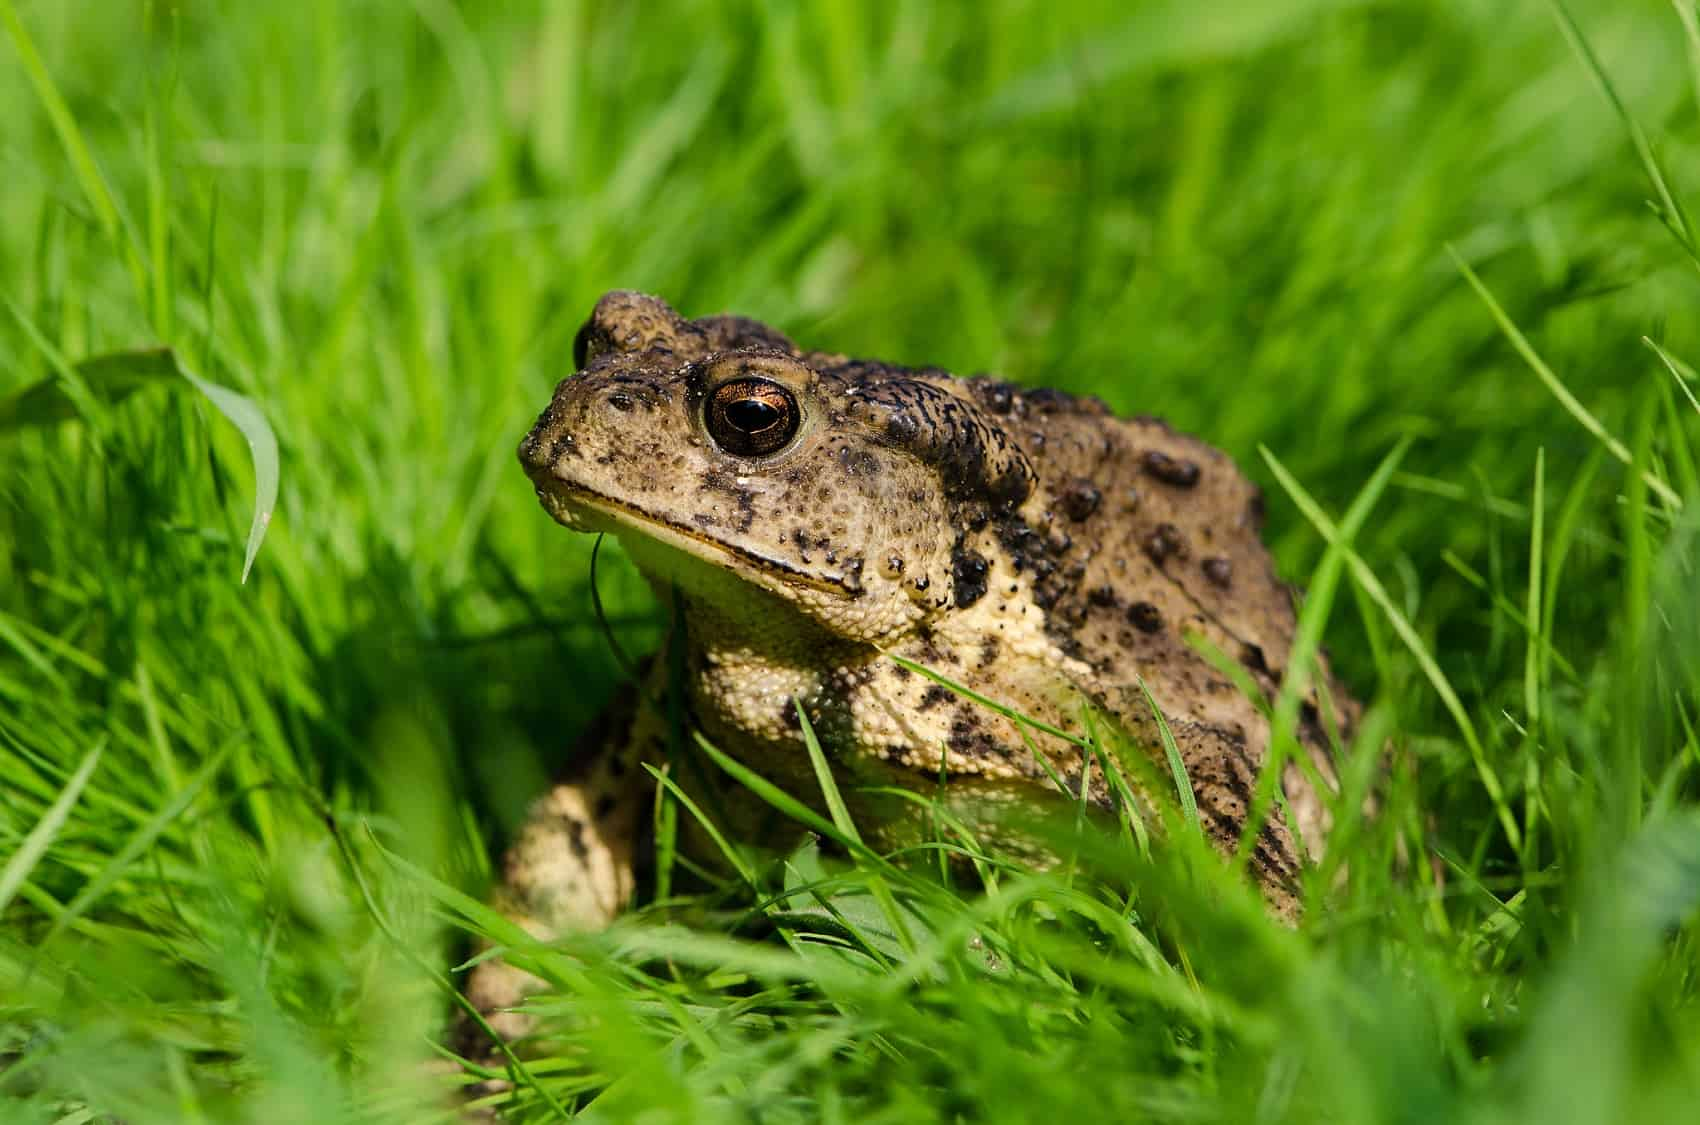 Toad in grass.